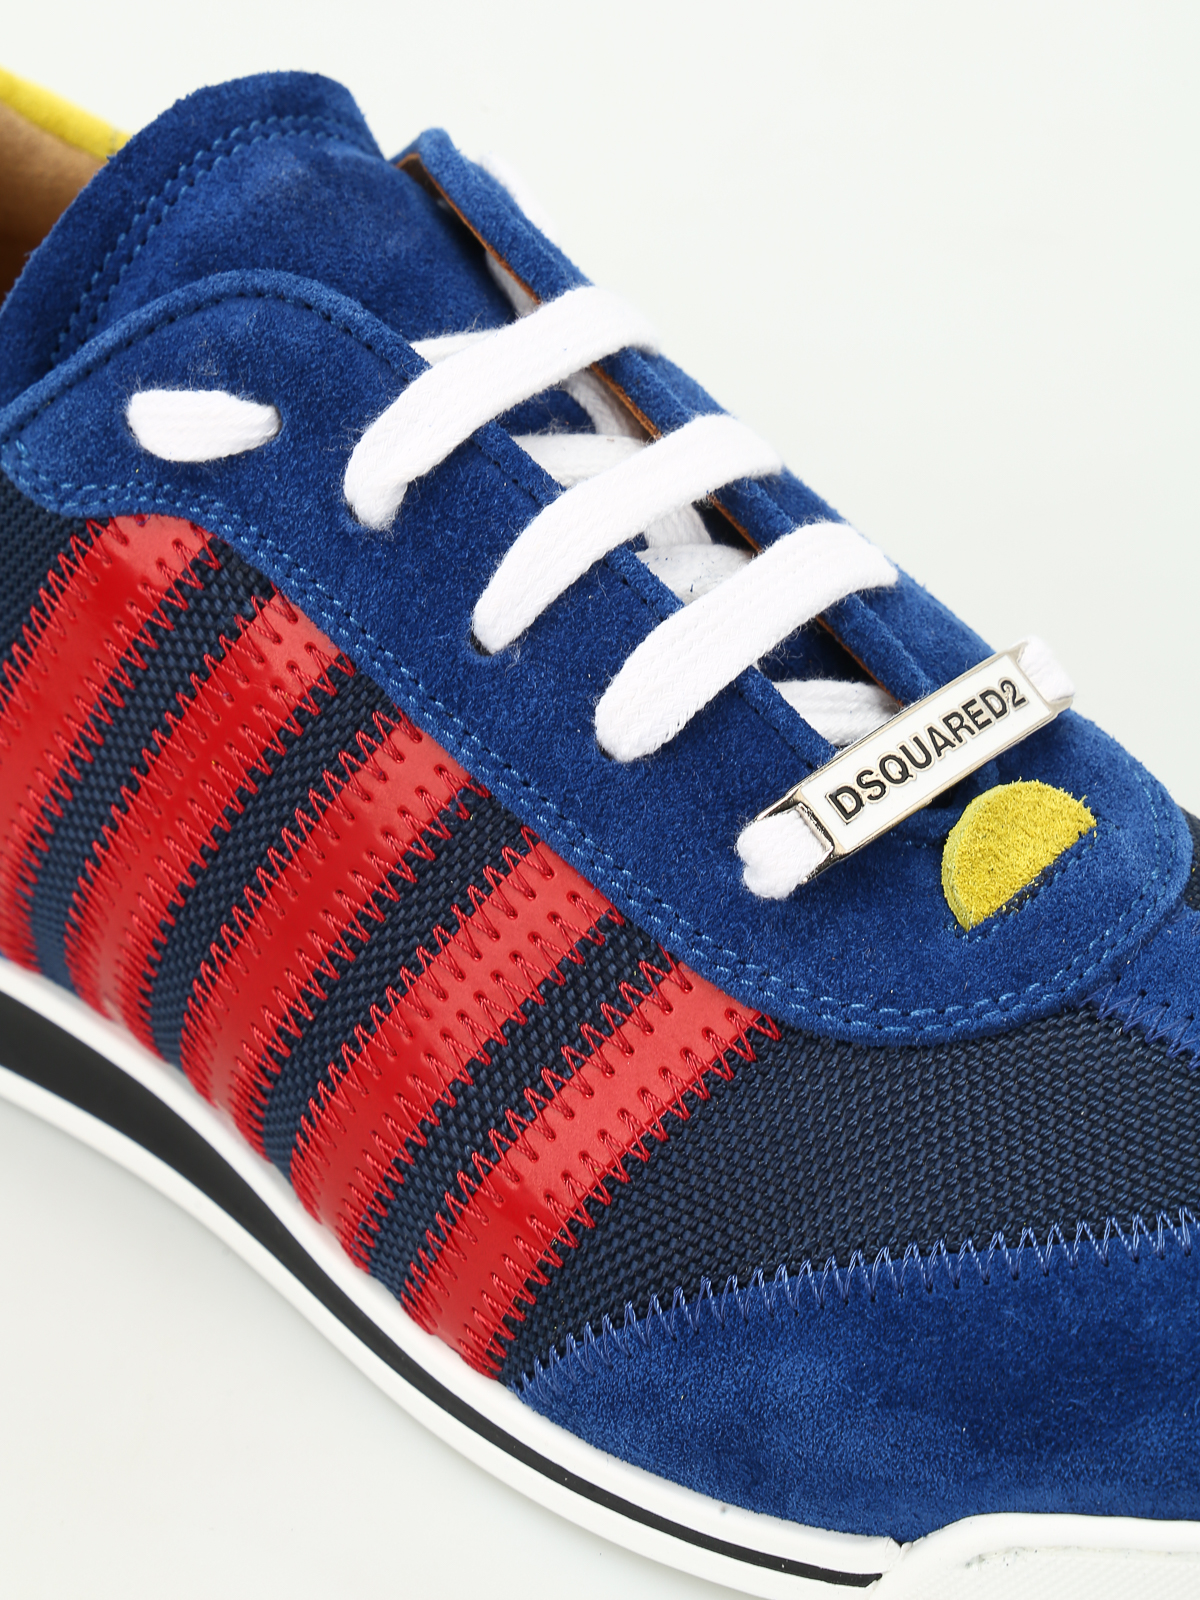 Trainers Dsquared2New Runner sneakersSN419839M099iKRIXcom